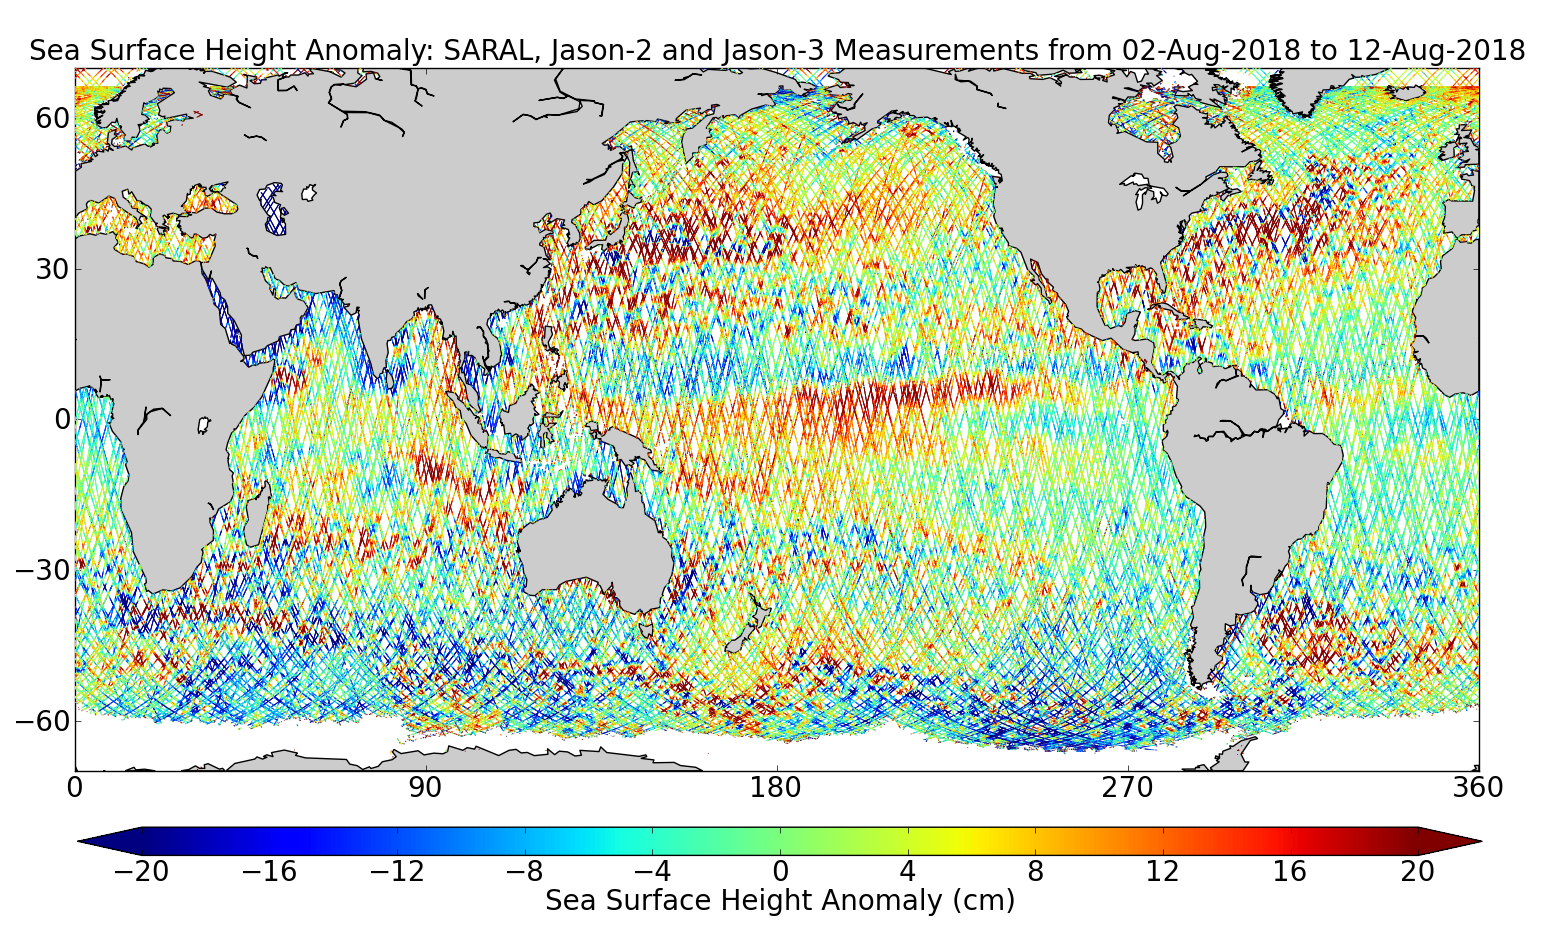 Sea Surface Height Anomaly: SARAL, Jason-2 and Jason-3 Measurements from 02-Aug-2018 to 12-Aug-2018